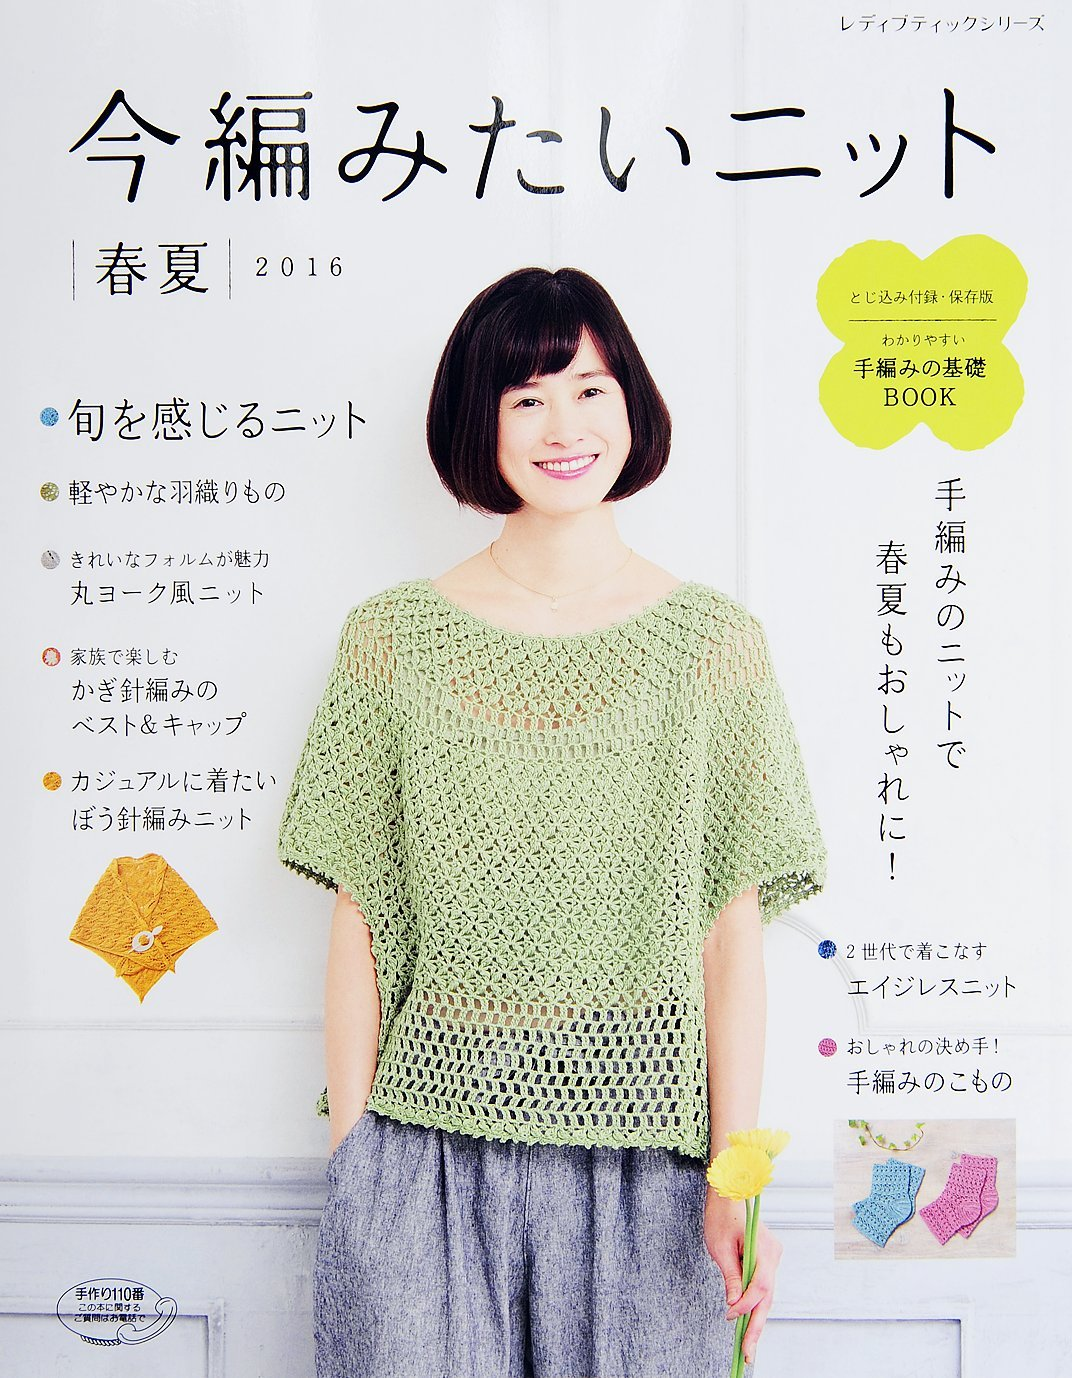 I Want to knit now